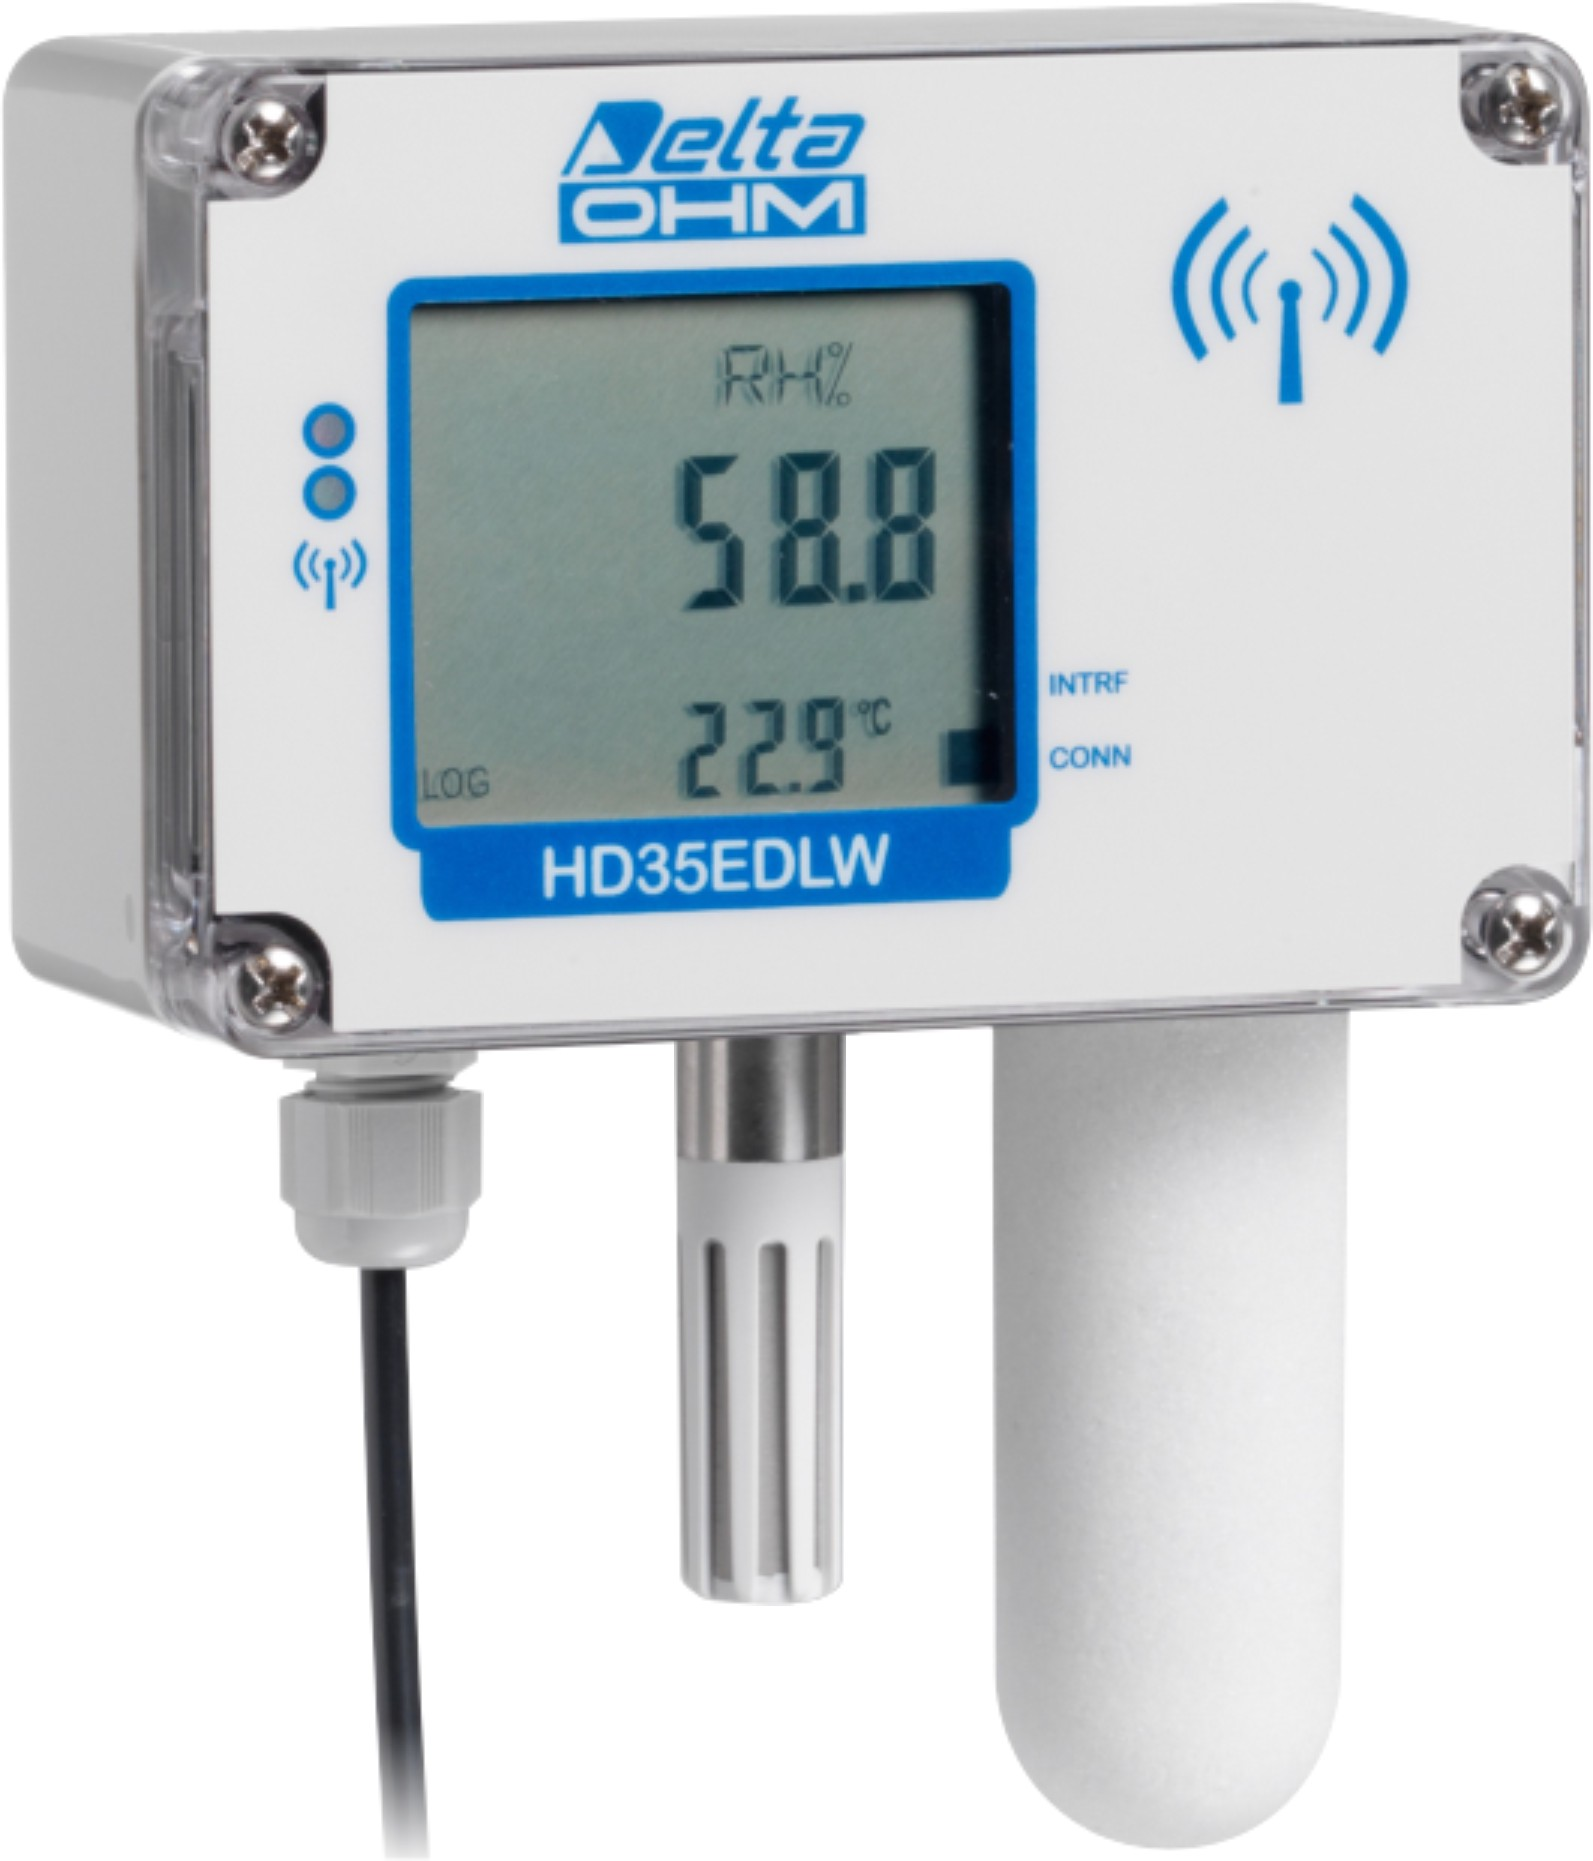 Temperature, humidity and CO2wireless data logger